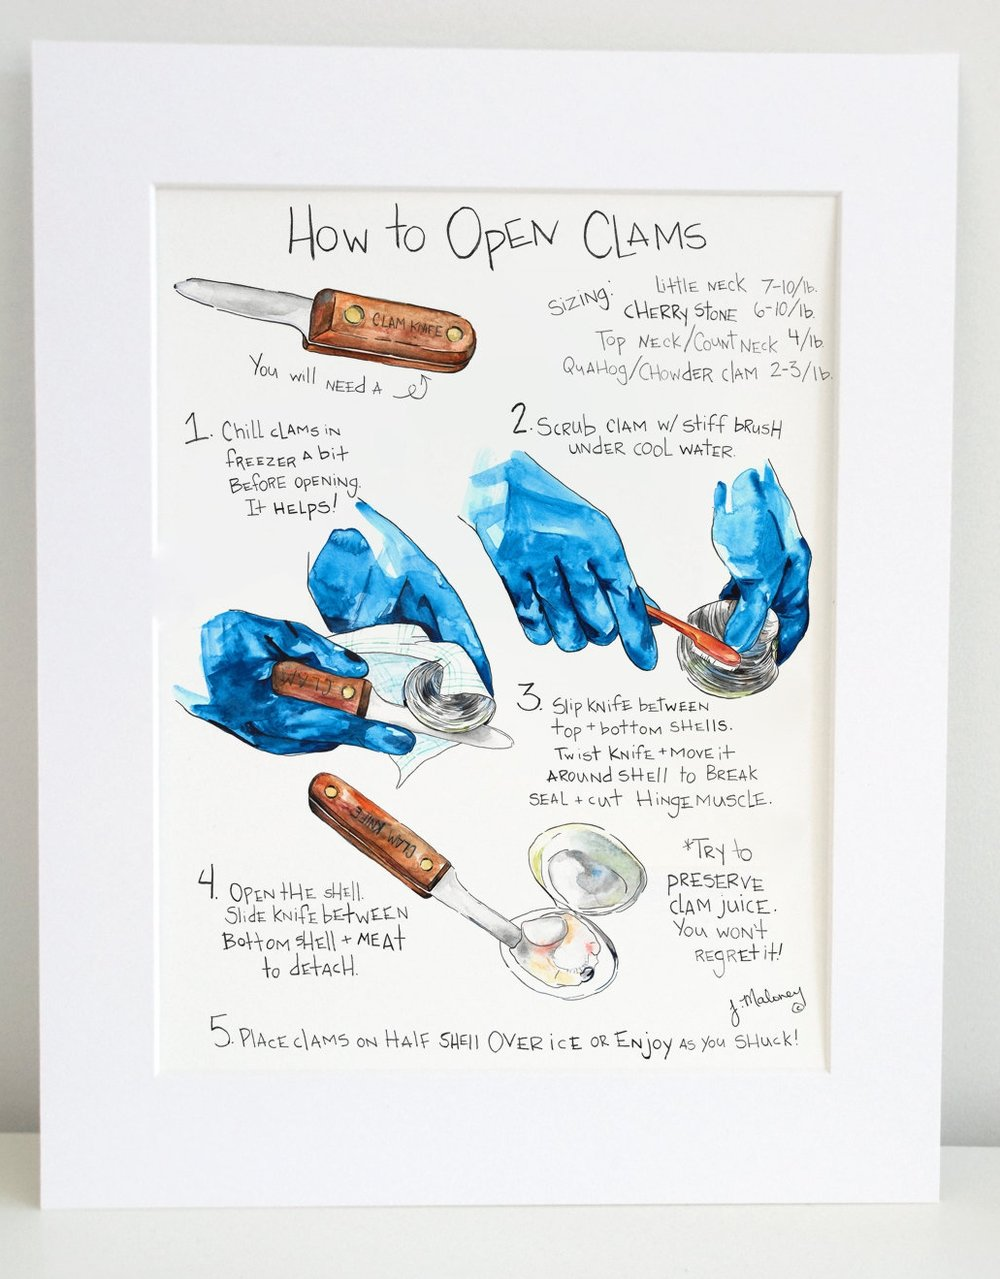 How to Open Clams is now available in my print shop .